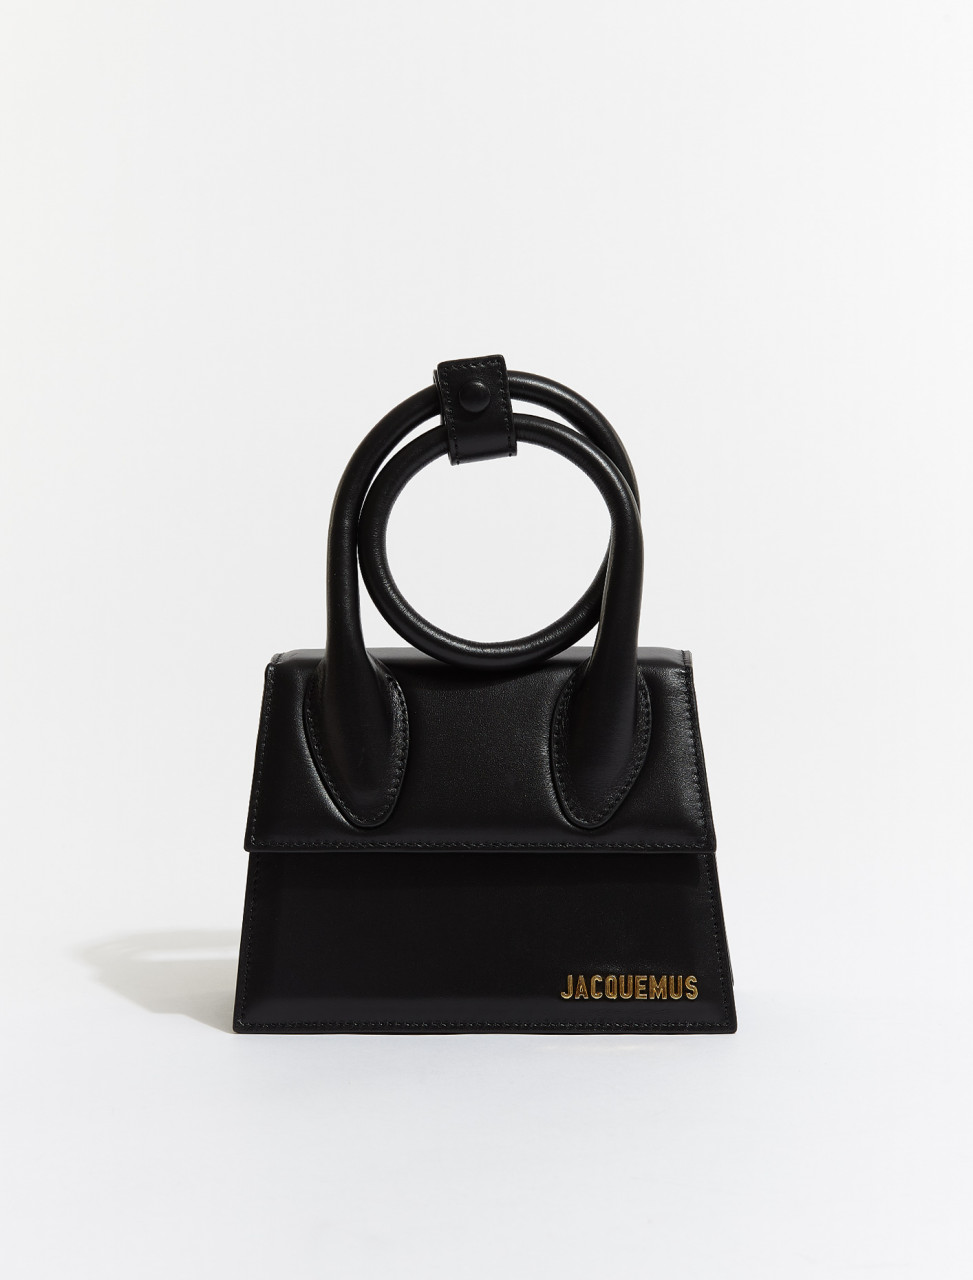 211BA05-211-300990 JACQUEMUS LE CHIQUITO NOEUD IN BLACK